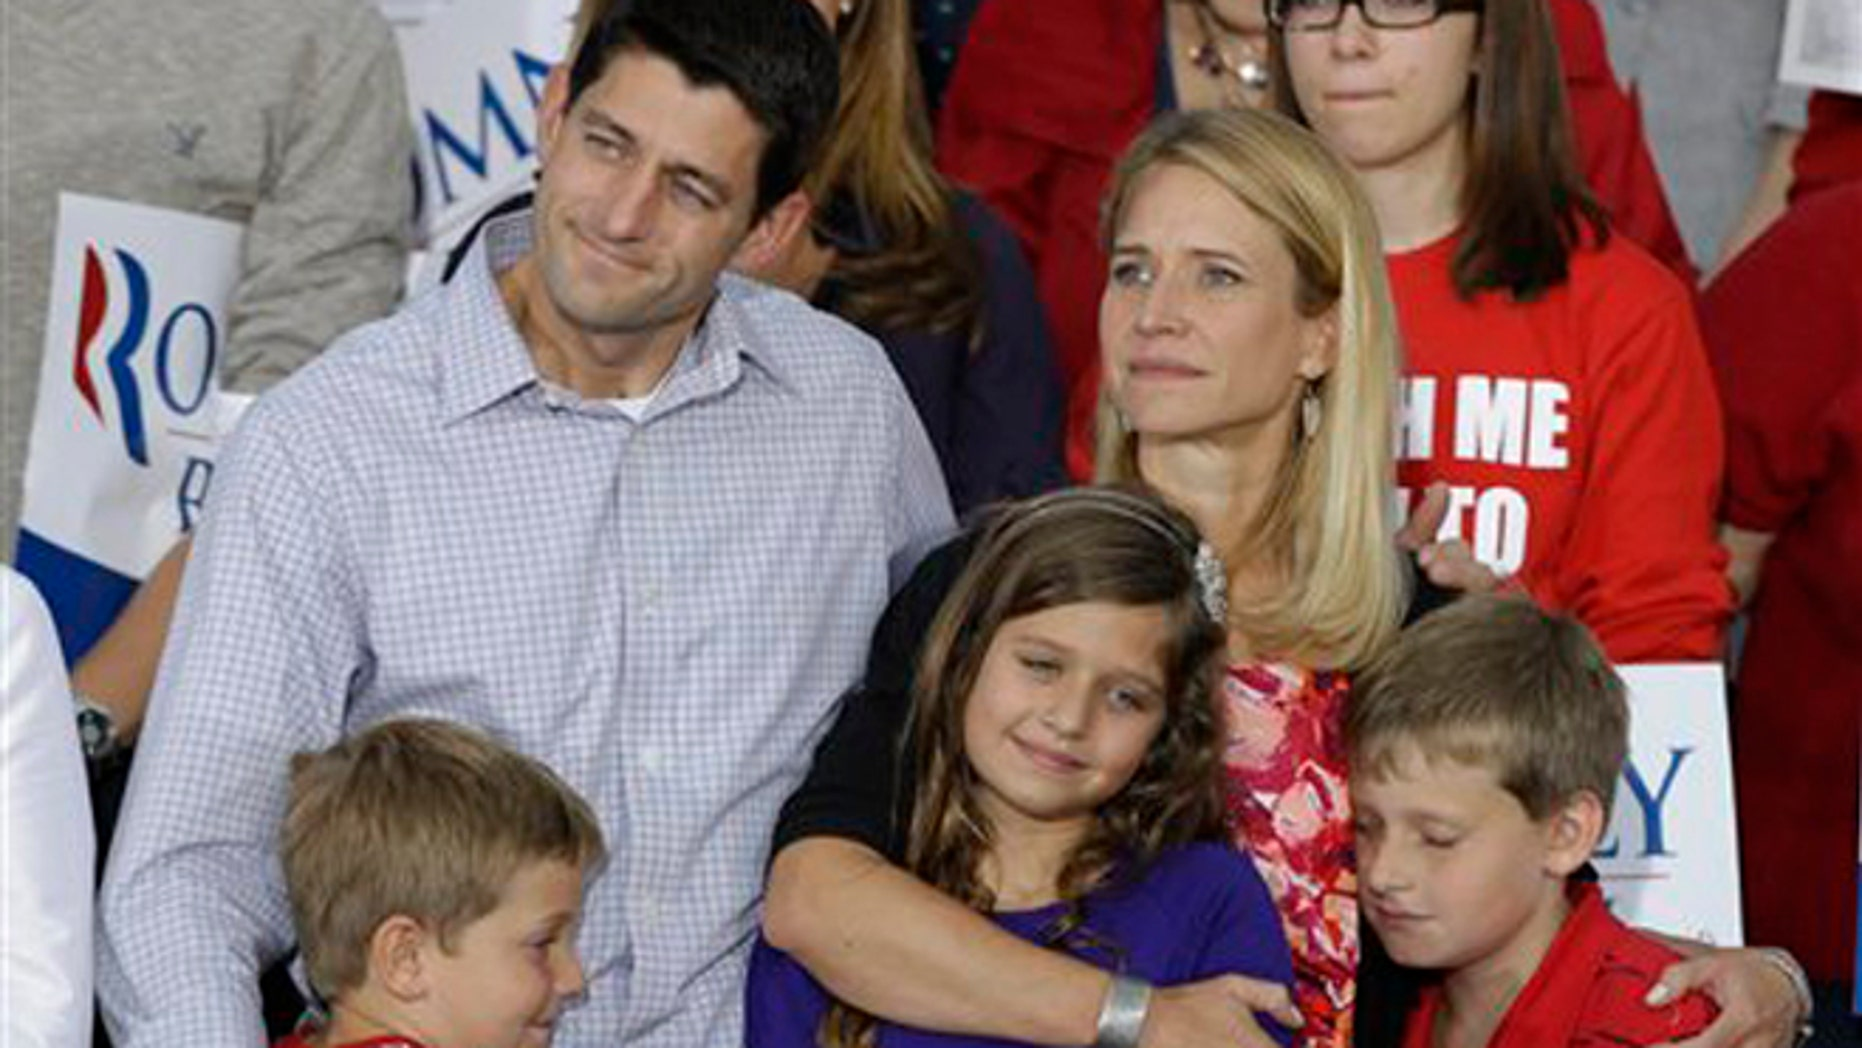 Sunday, August, 12, 2012: GOP Vice presidential candidate Rep. Paul Ryan, R-Wis, with wife Janna, daughter Liza and sons Charles, and Sam, right, during a rally  in Waukesha, Wis.